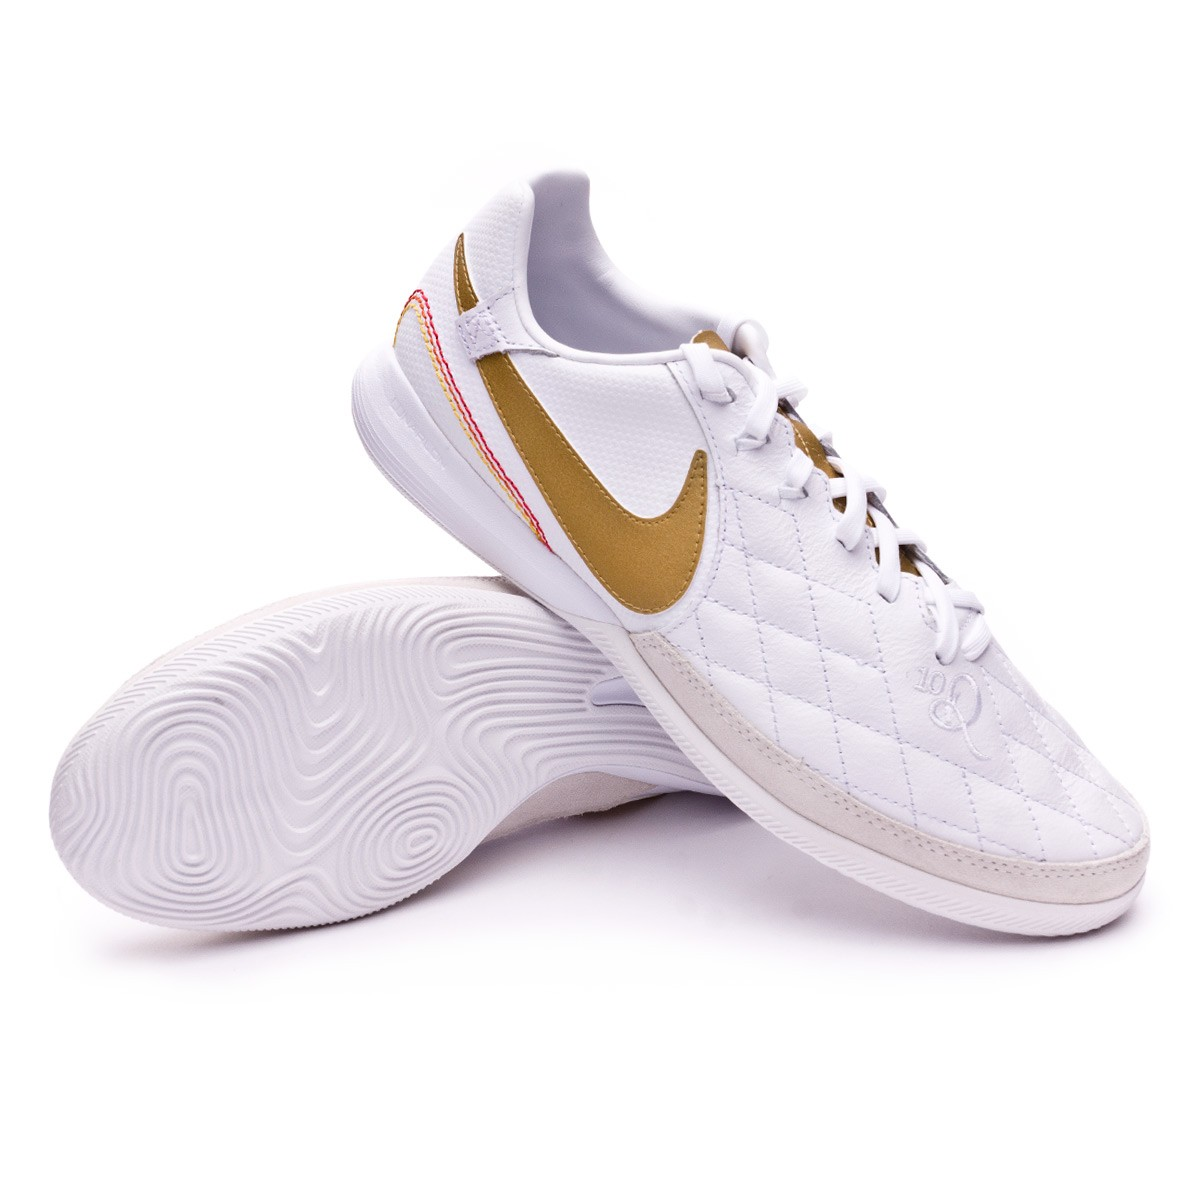 purchase cheap 80775 e93d0 Nike Lunar LegendX VII Pro 10R Barcelona IC Futsal Boot